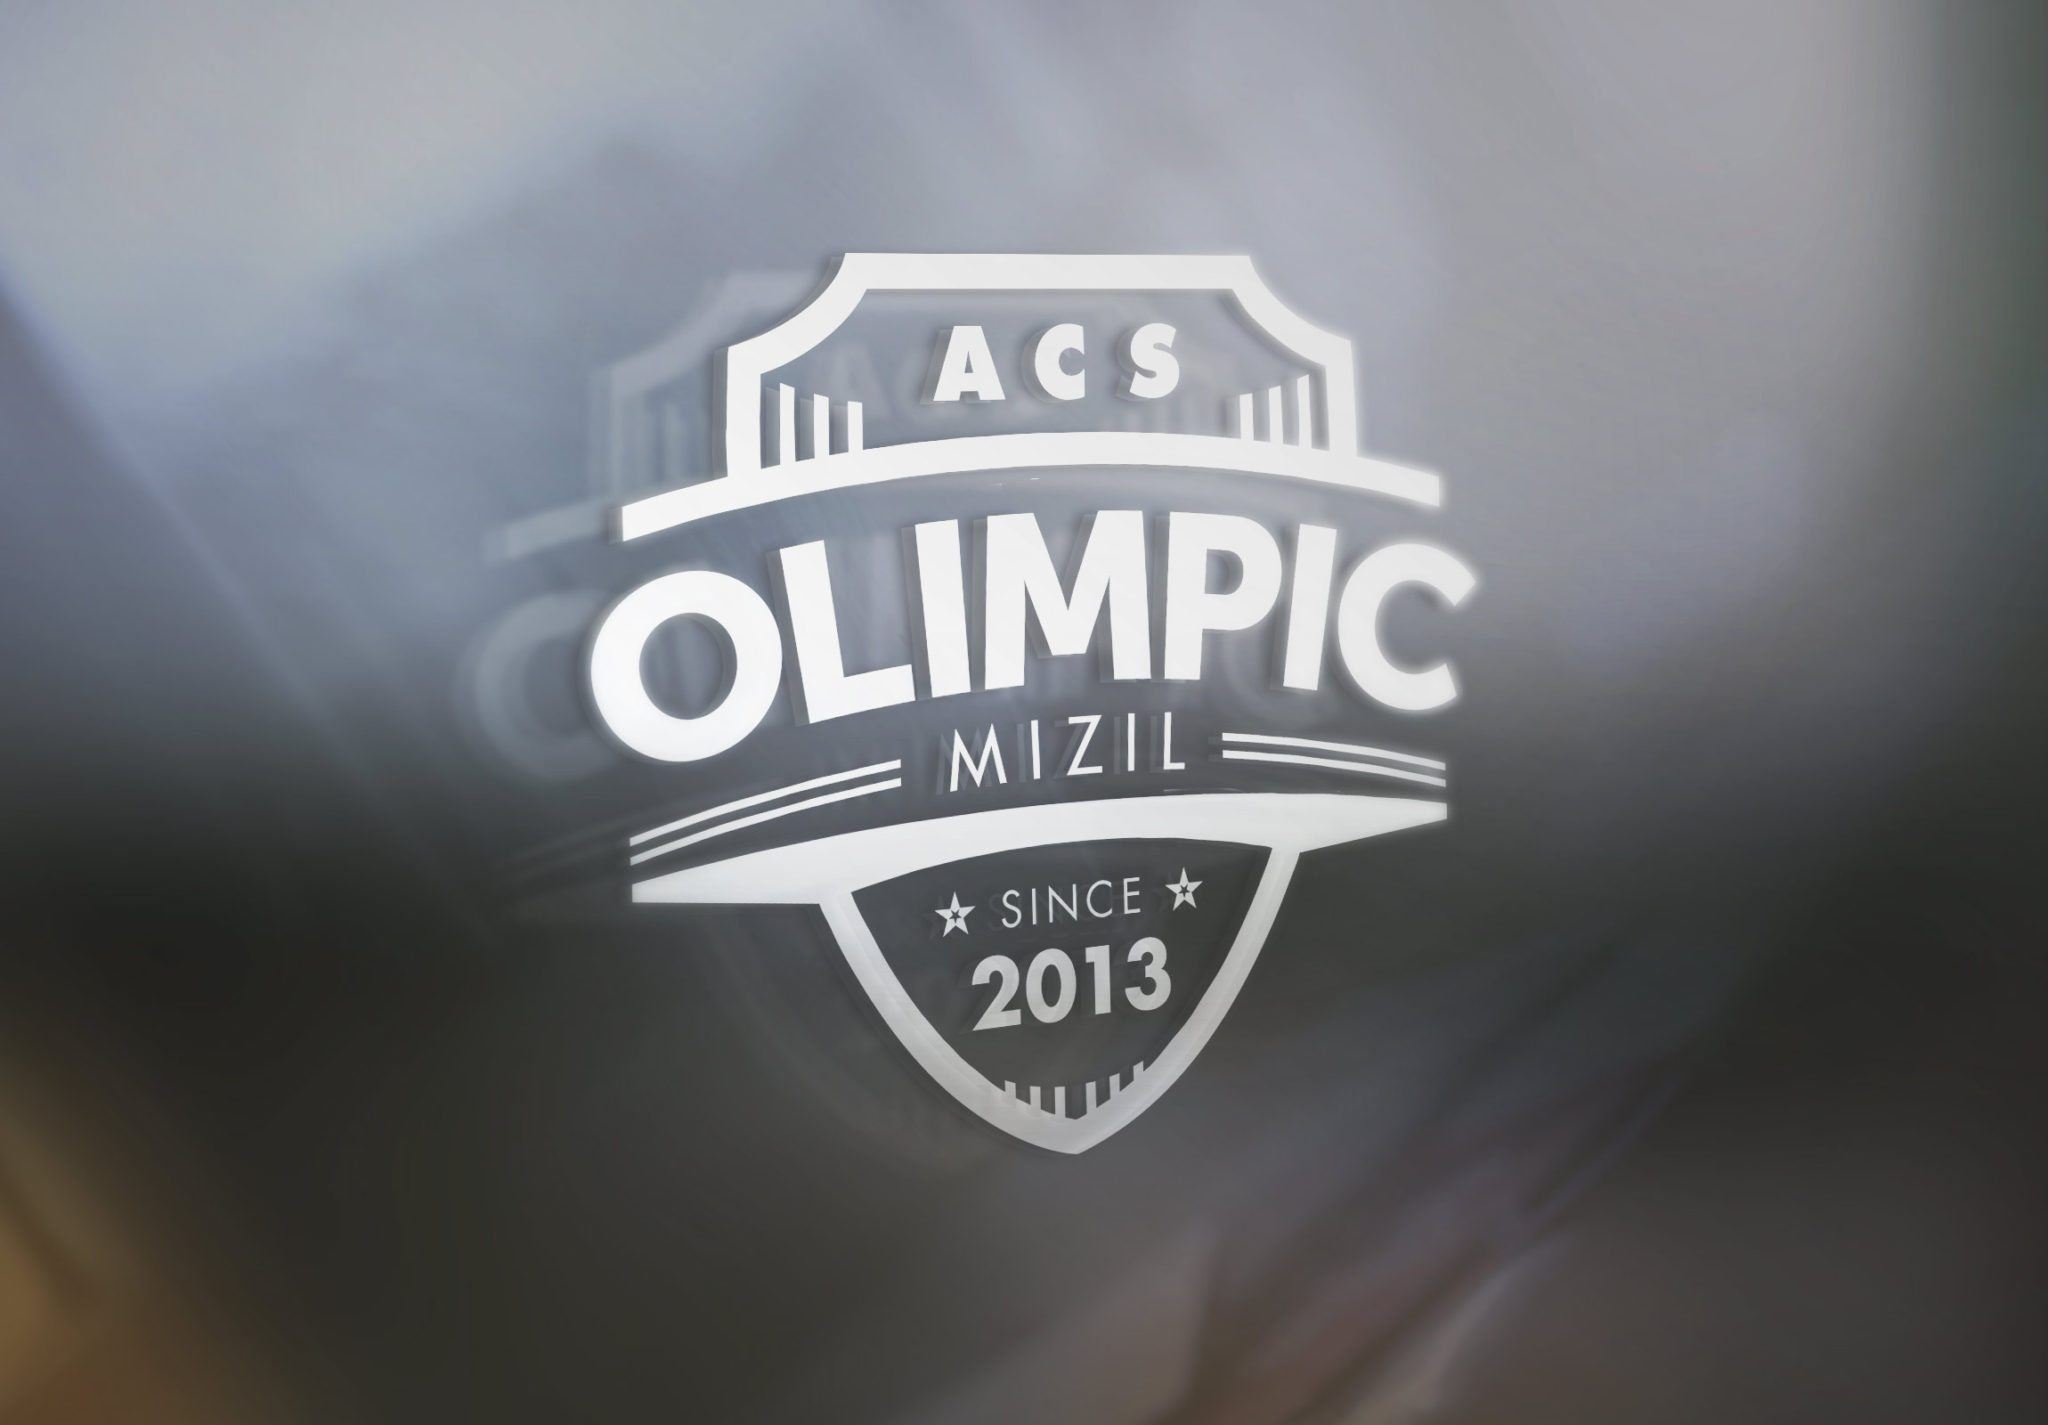 ACS OLIMPIC MIZIL by Alexander Slash